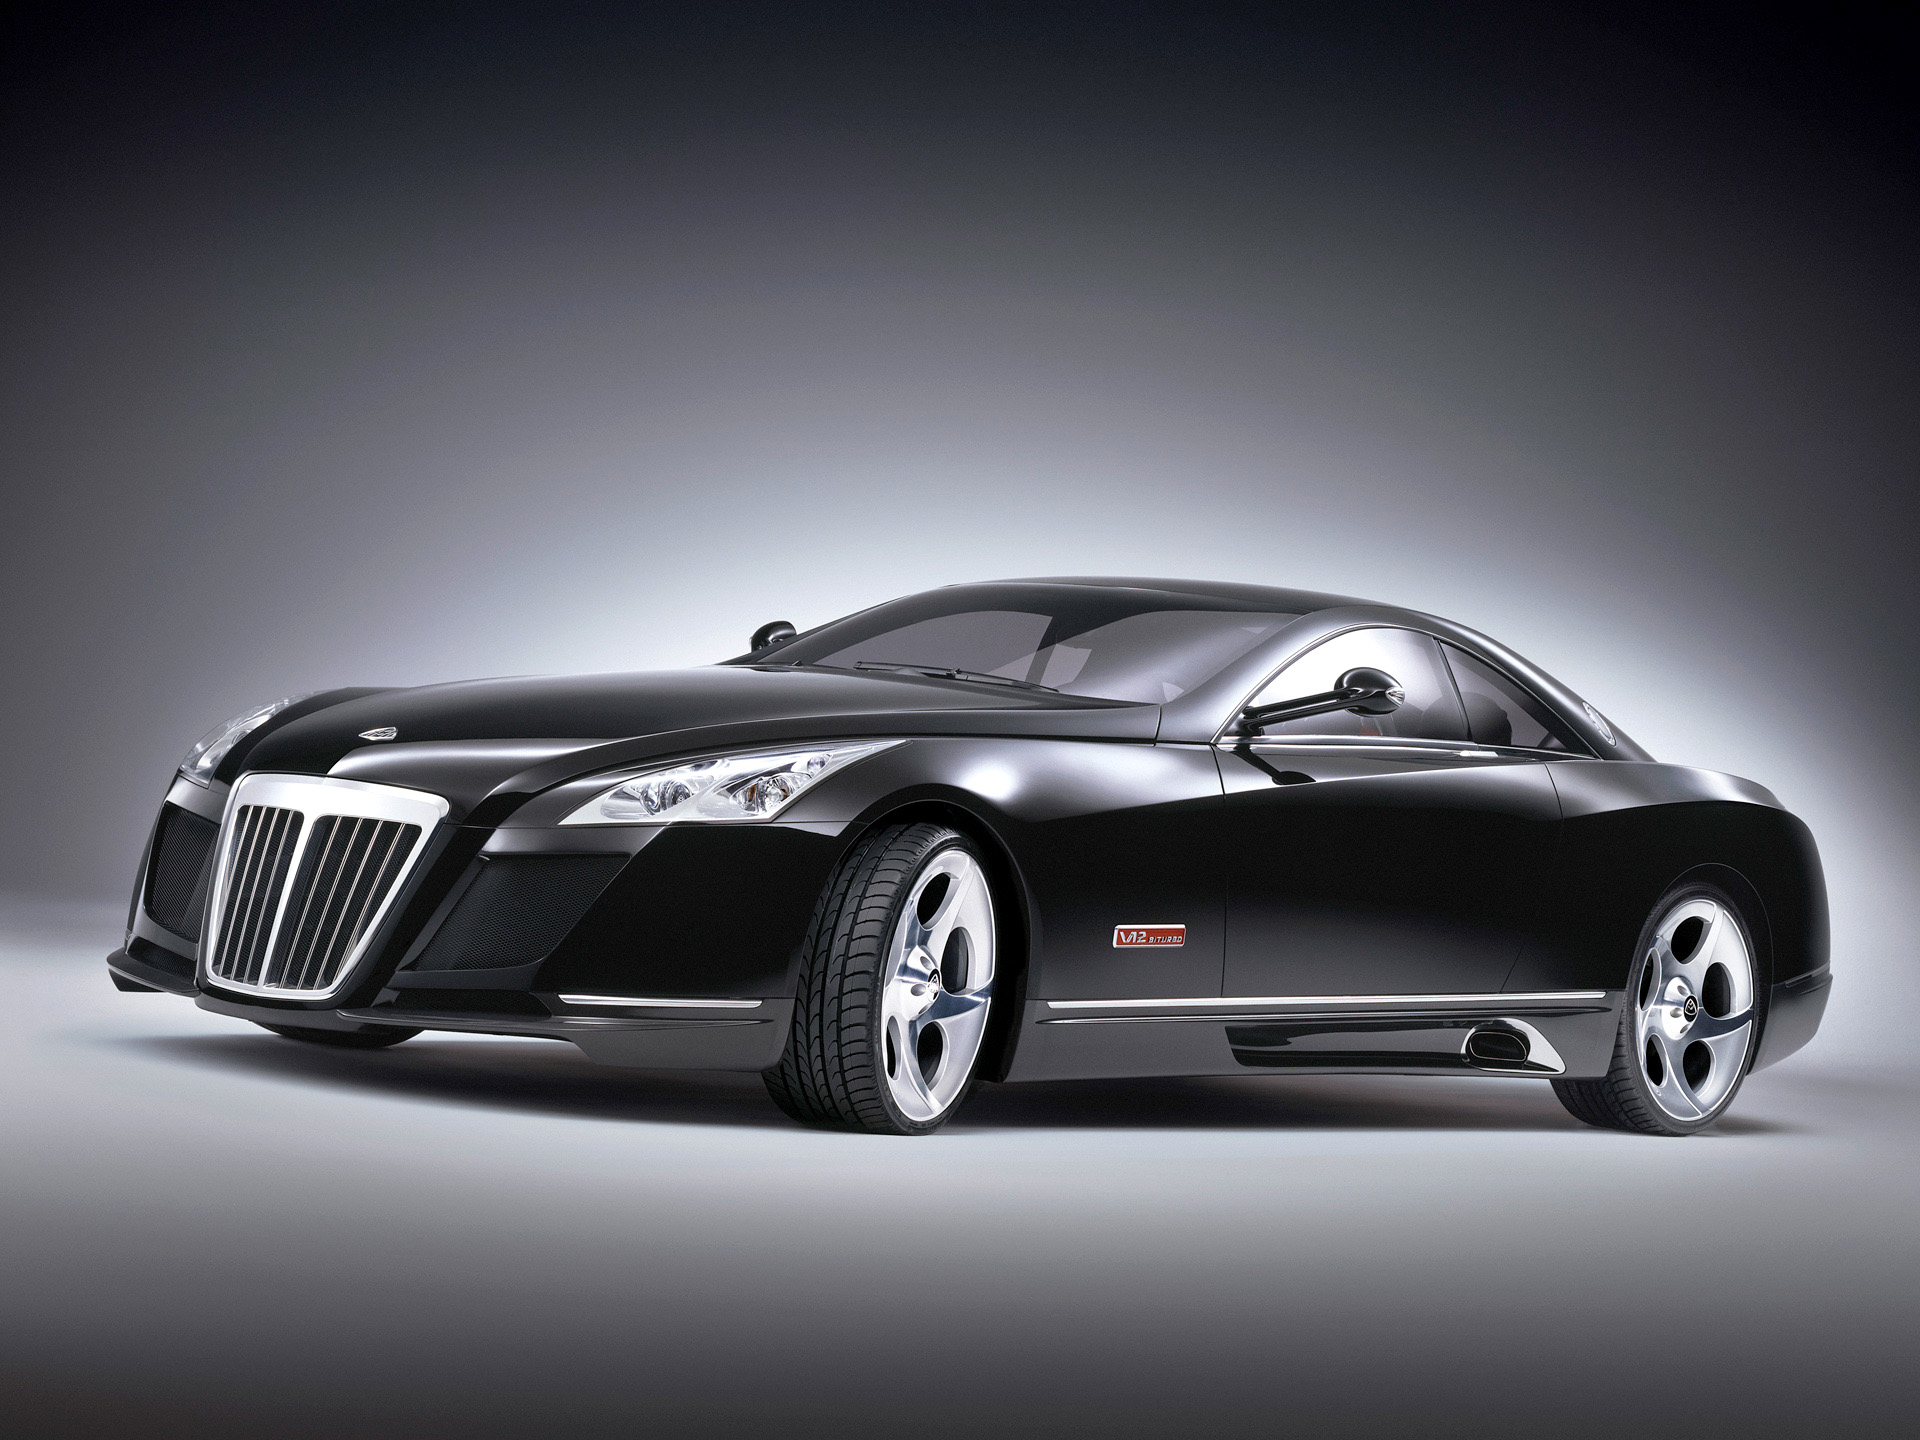 Maybach Exelero - 1920 x 1440, 10 из 20